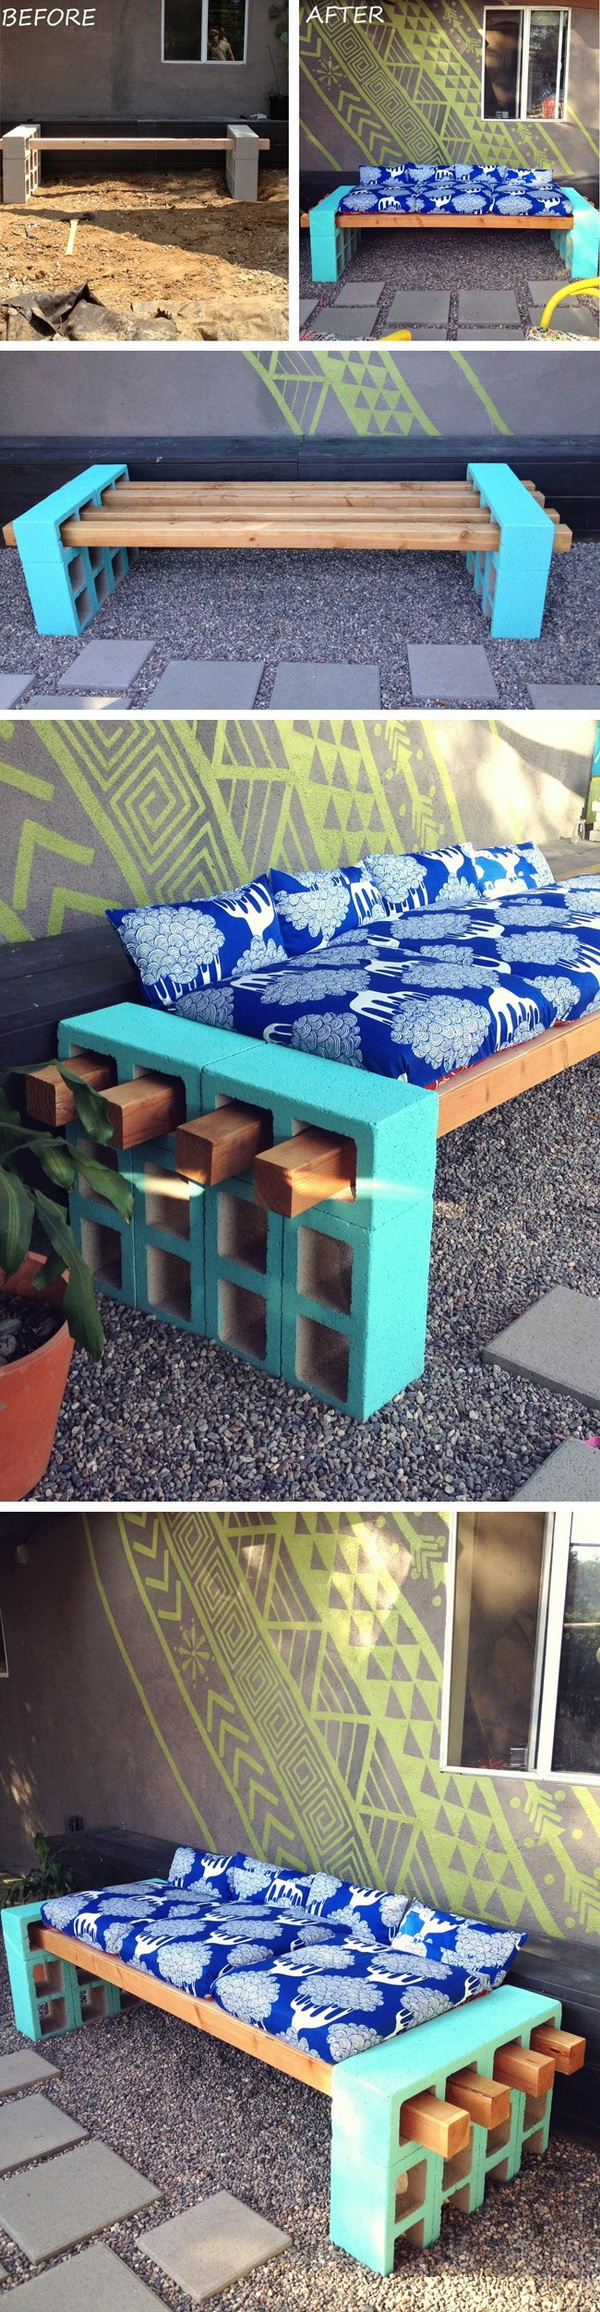 DIY Cement Block Bench: This DIY cement block bench can provide a comfortable seating for your backyard gathering!